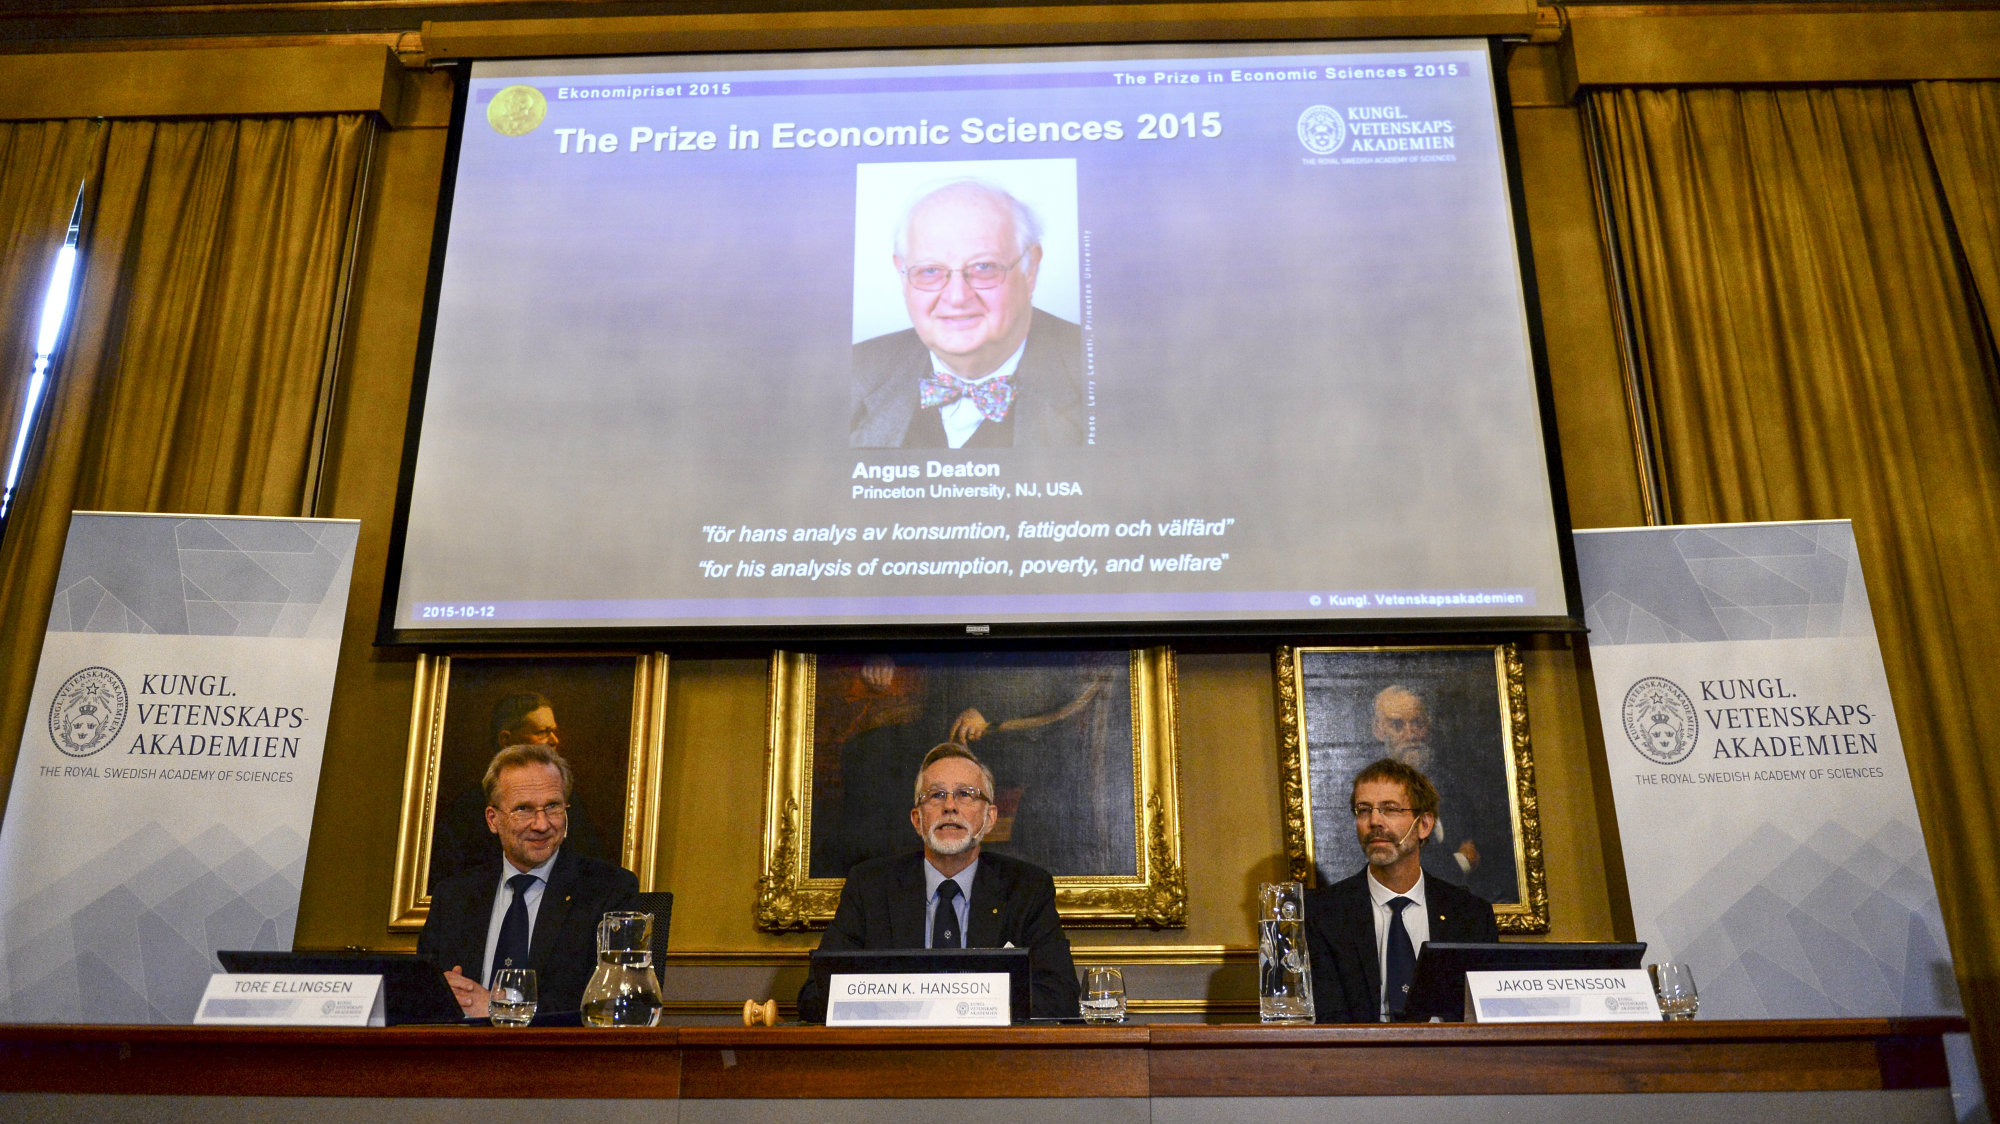 "A picture of British economist Angus Deaton, winner of the 2015 economics Nobel Prize, is seen on a screen as Goran K. Hansson (C), permanent secretary for the Royal Swedish Academy of Sciences, and Tore Ellingsen (L), chairman of the prize committee, and Jakob Svensson, member of the Academy, address a news conference at the Royal Swedish Academy of Science, in Stockholm, Sweden October 12, 2015. Deaton won the 2015 economics Nobel Prize for ""his analysis of consumption, poverty, and we"